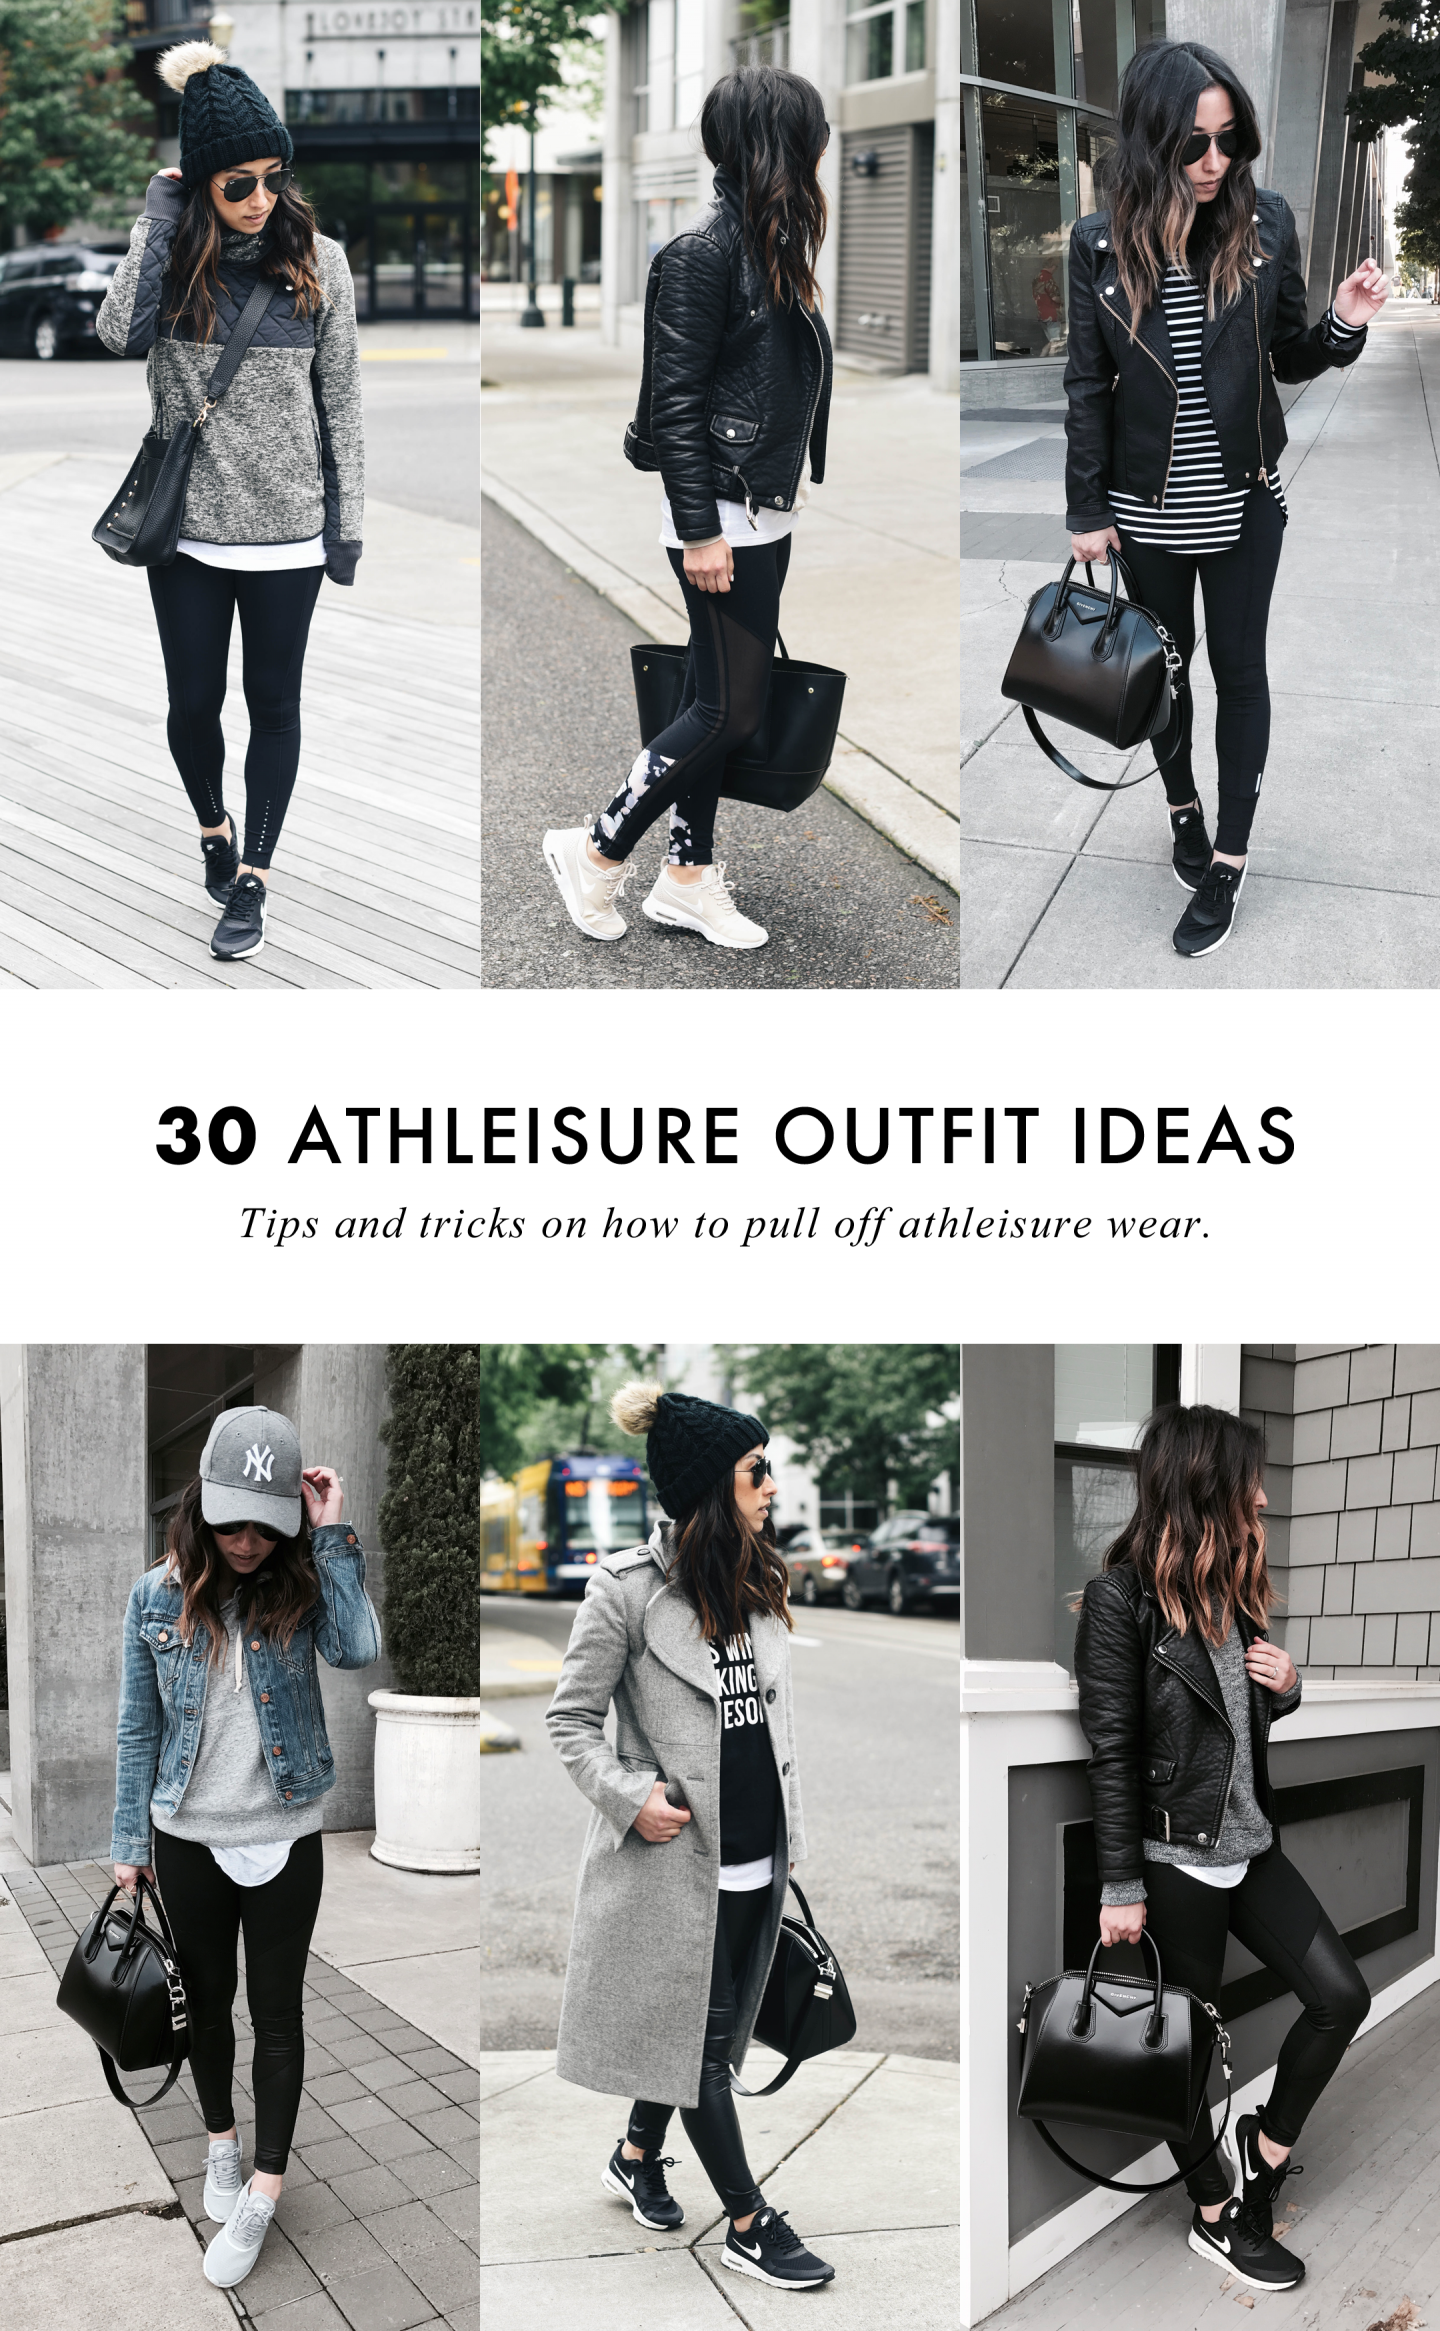 How To Pull Off Athleisure Wear + 30 Outfit Ideas #howtowear